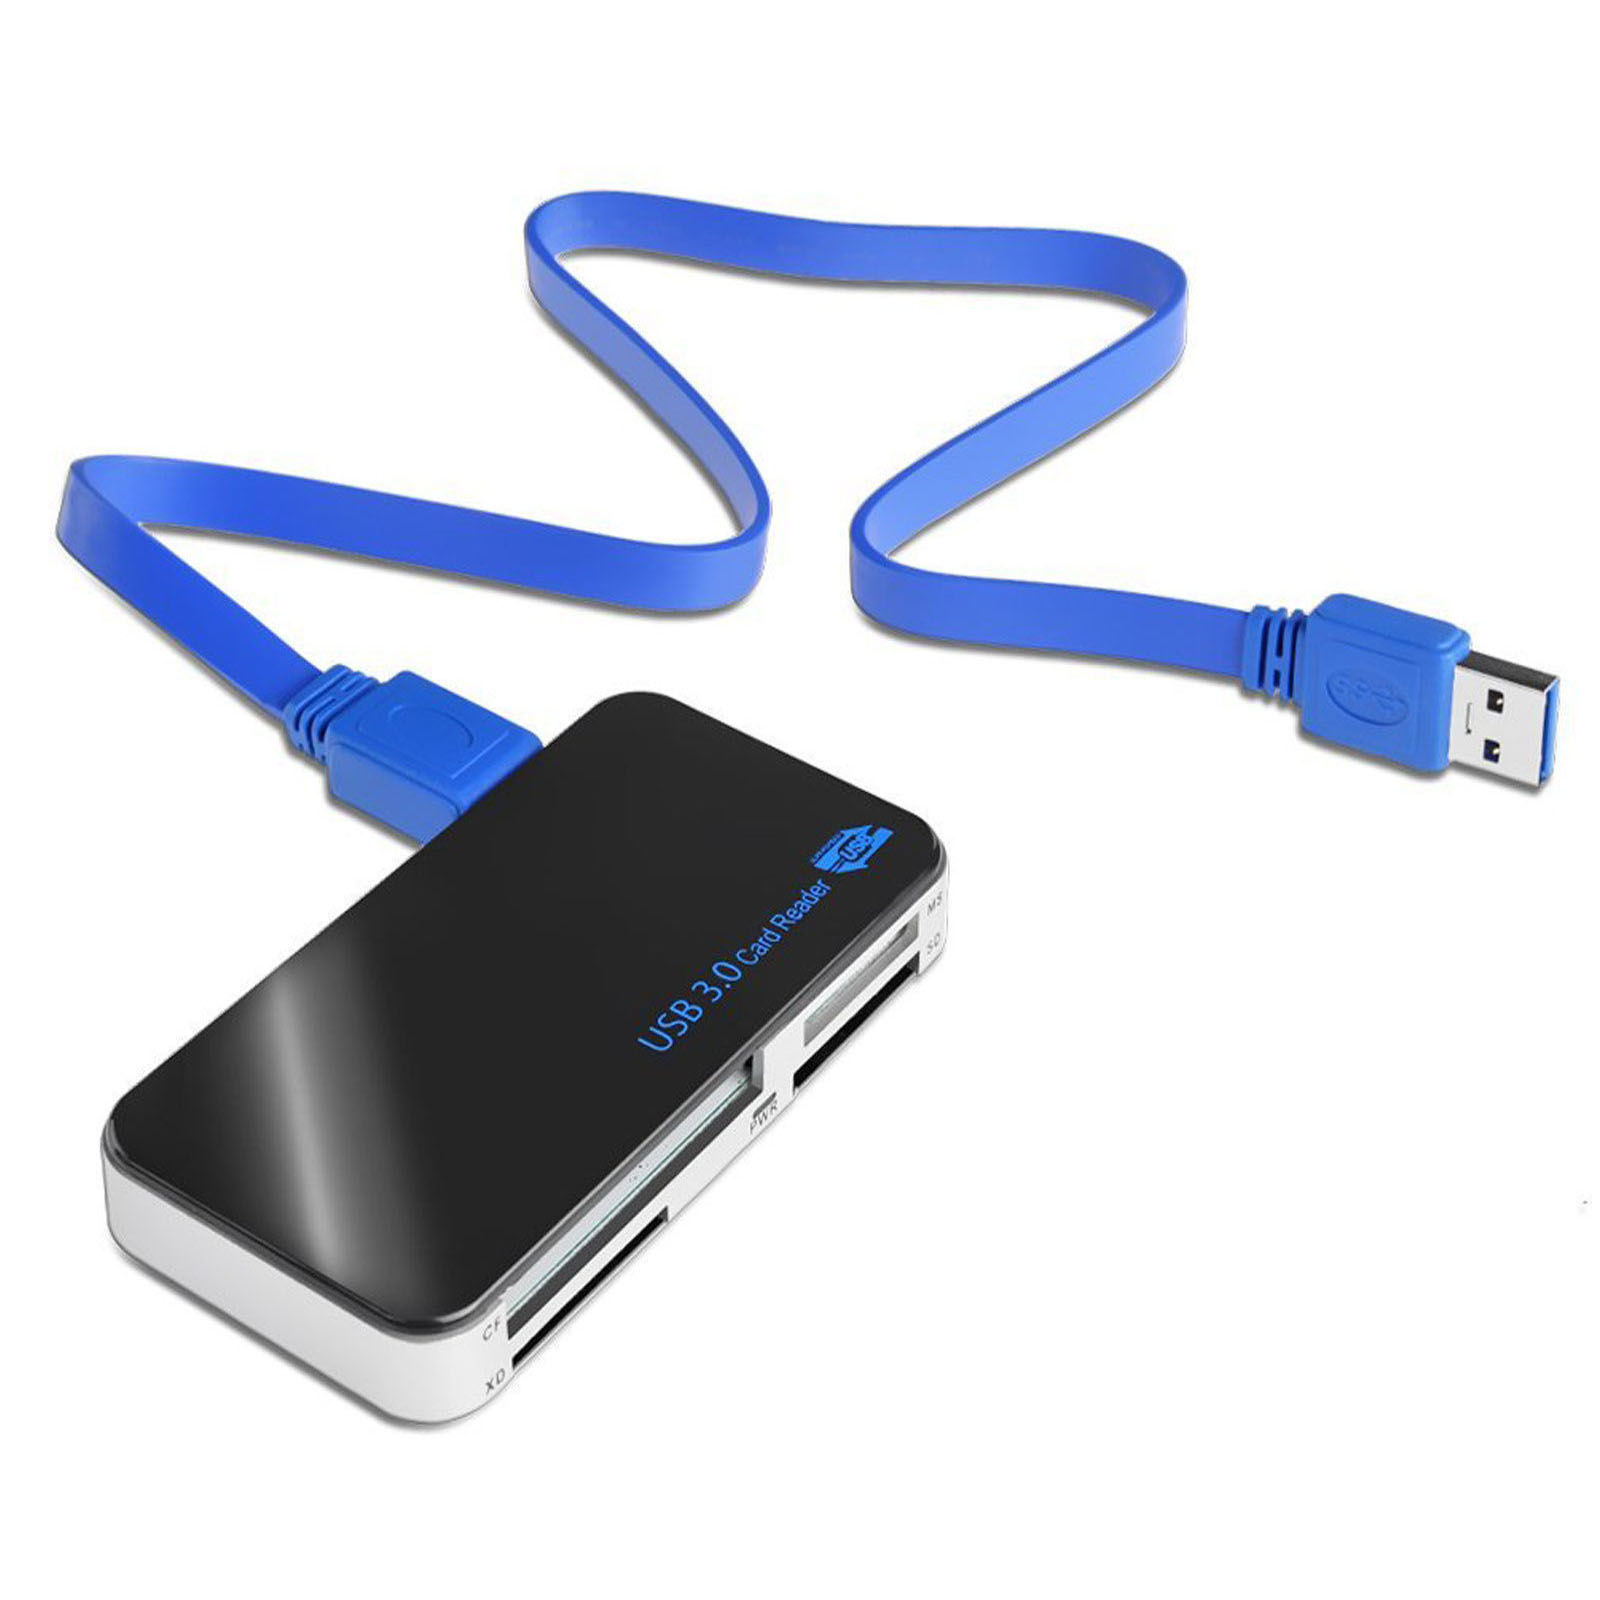 USB 3.0 Memory Card Reader Adapter 5Gbps Micro SD/TF CF XD MS M2 card for Windows 2000/XP/Vista/7/8/8.1/10, Mac OS 10.4~10.11, Linux